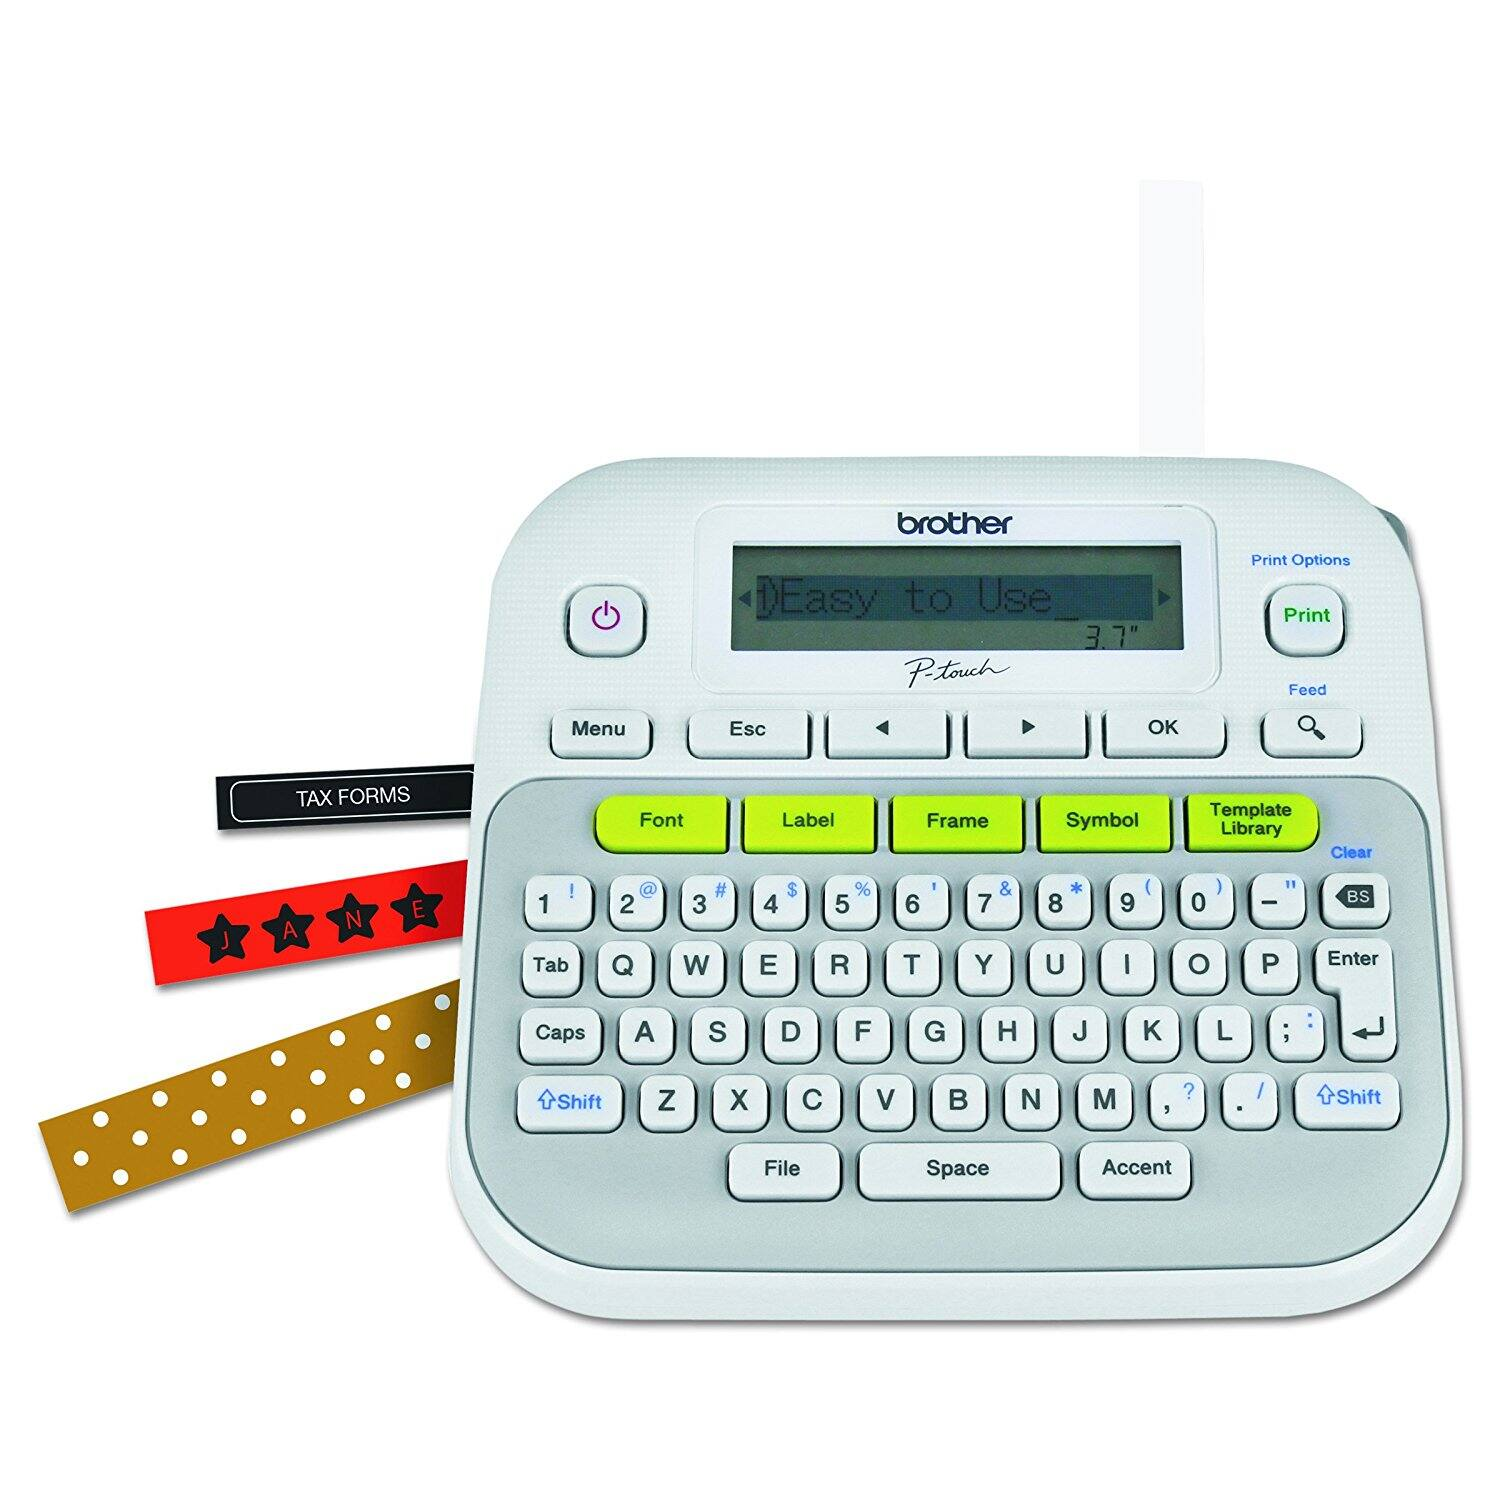 Brother P-Touch PT-D210 Label Maker $9.99 Free Shipping with Prime